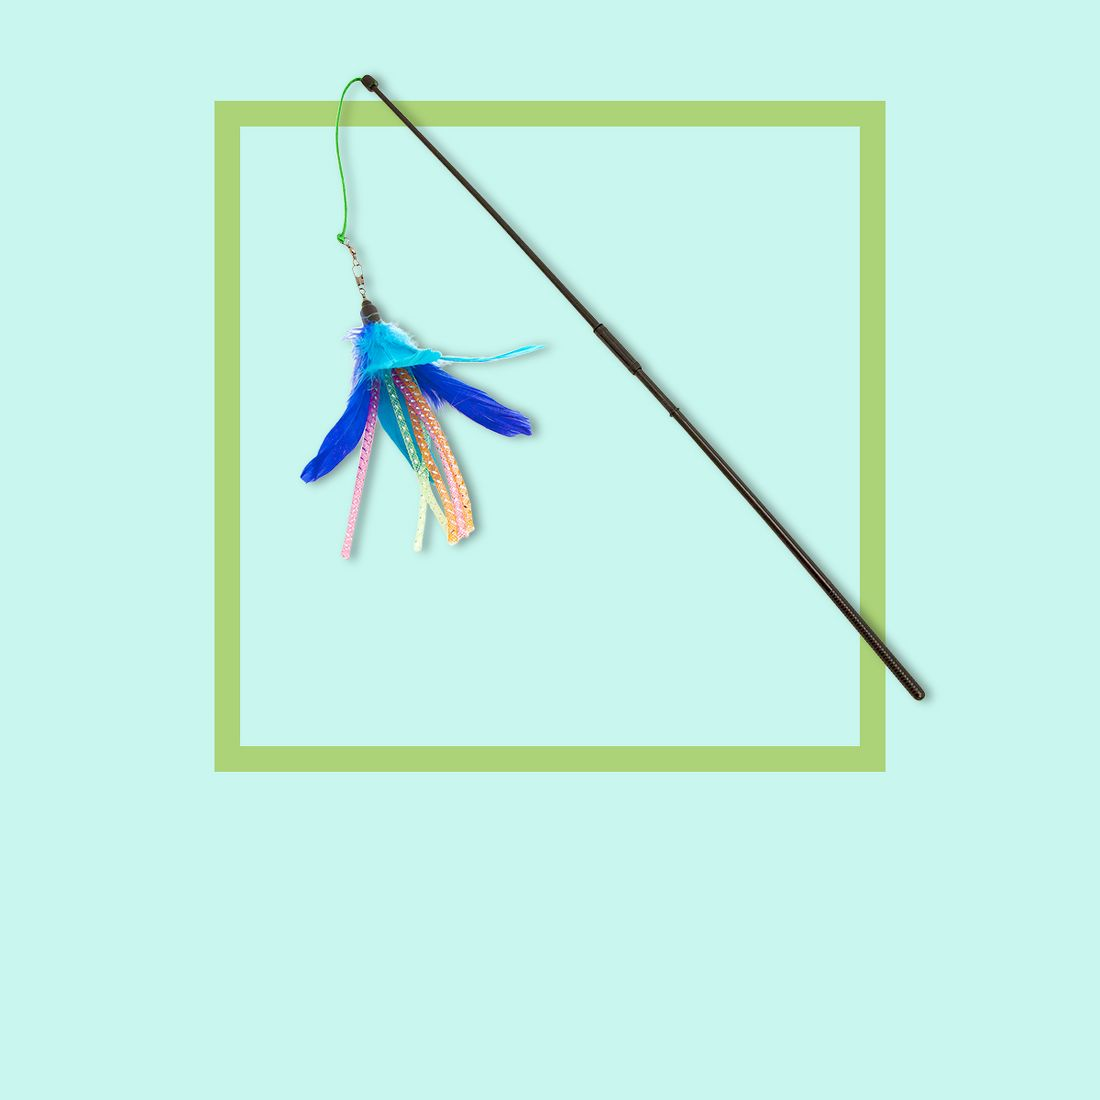 Feather & Straw Spinning Wand